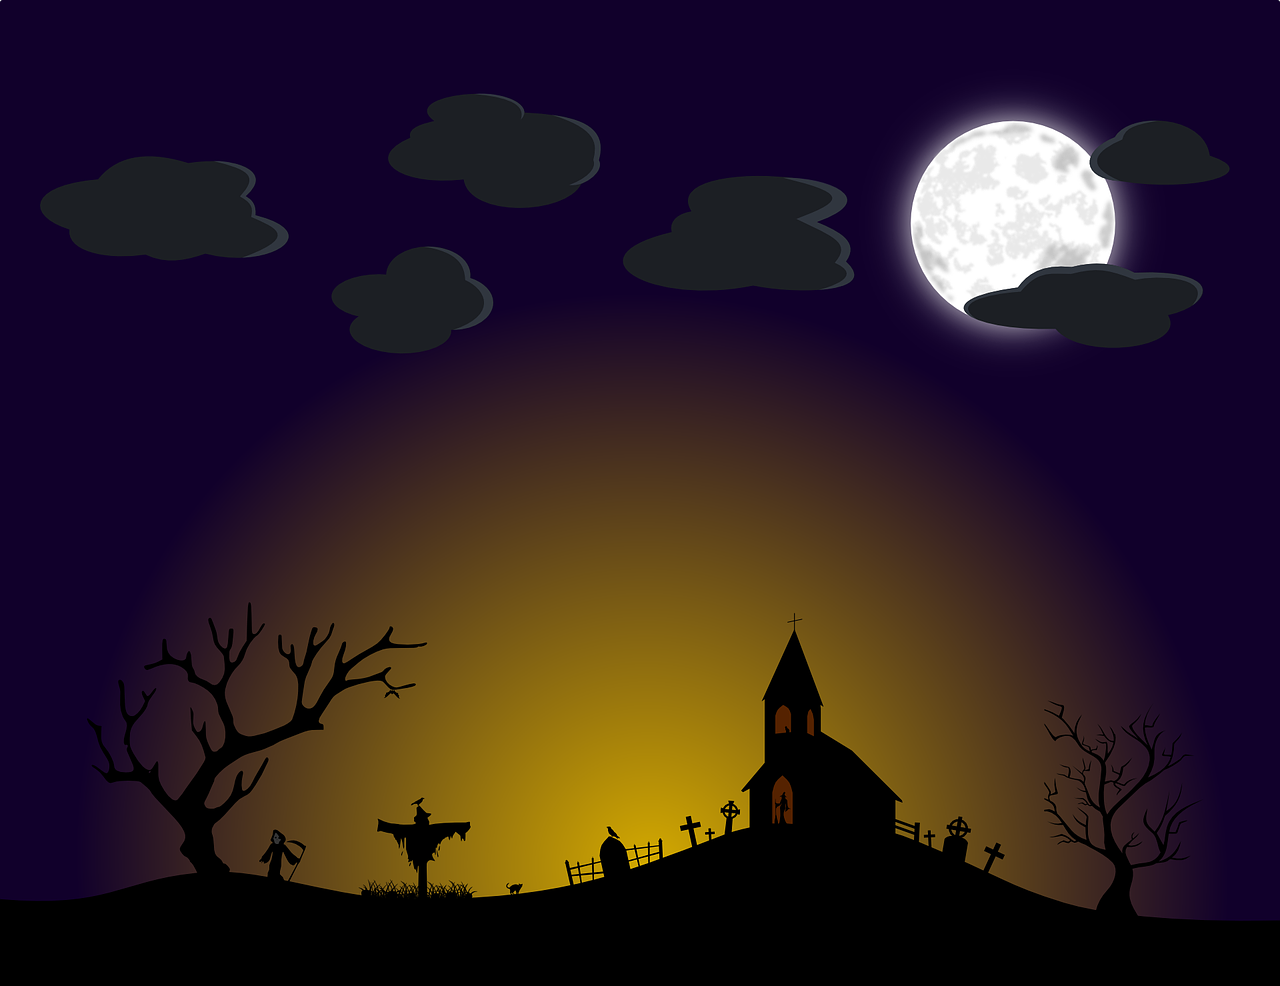 How to draw night, night landscape 4